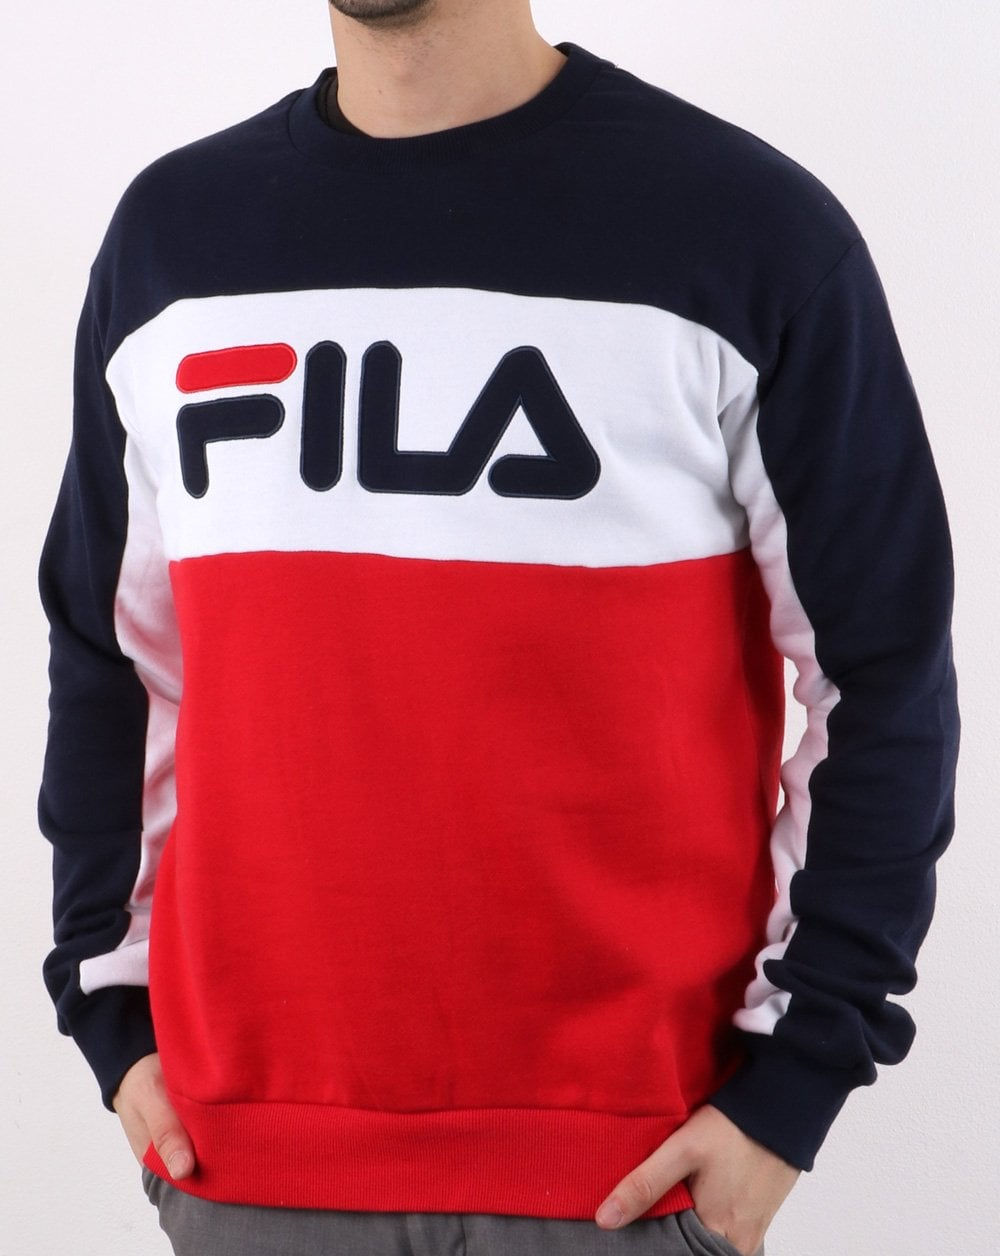 dd2a4653243 Fila Logo Vintage Brock Sweatshirt Navy, red, white | 80s casual ...